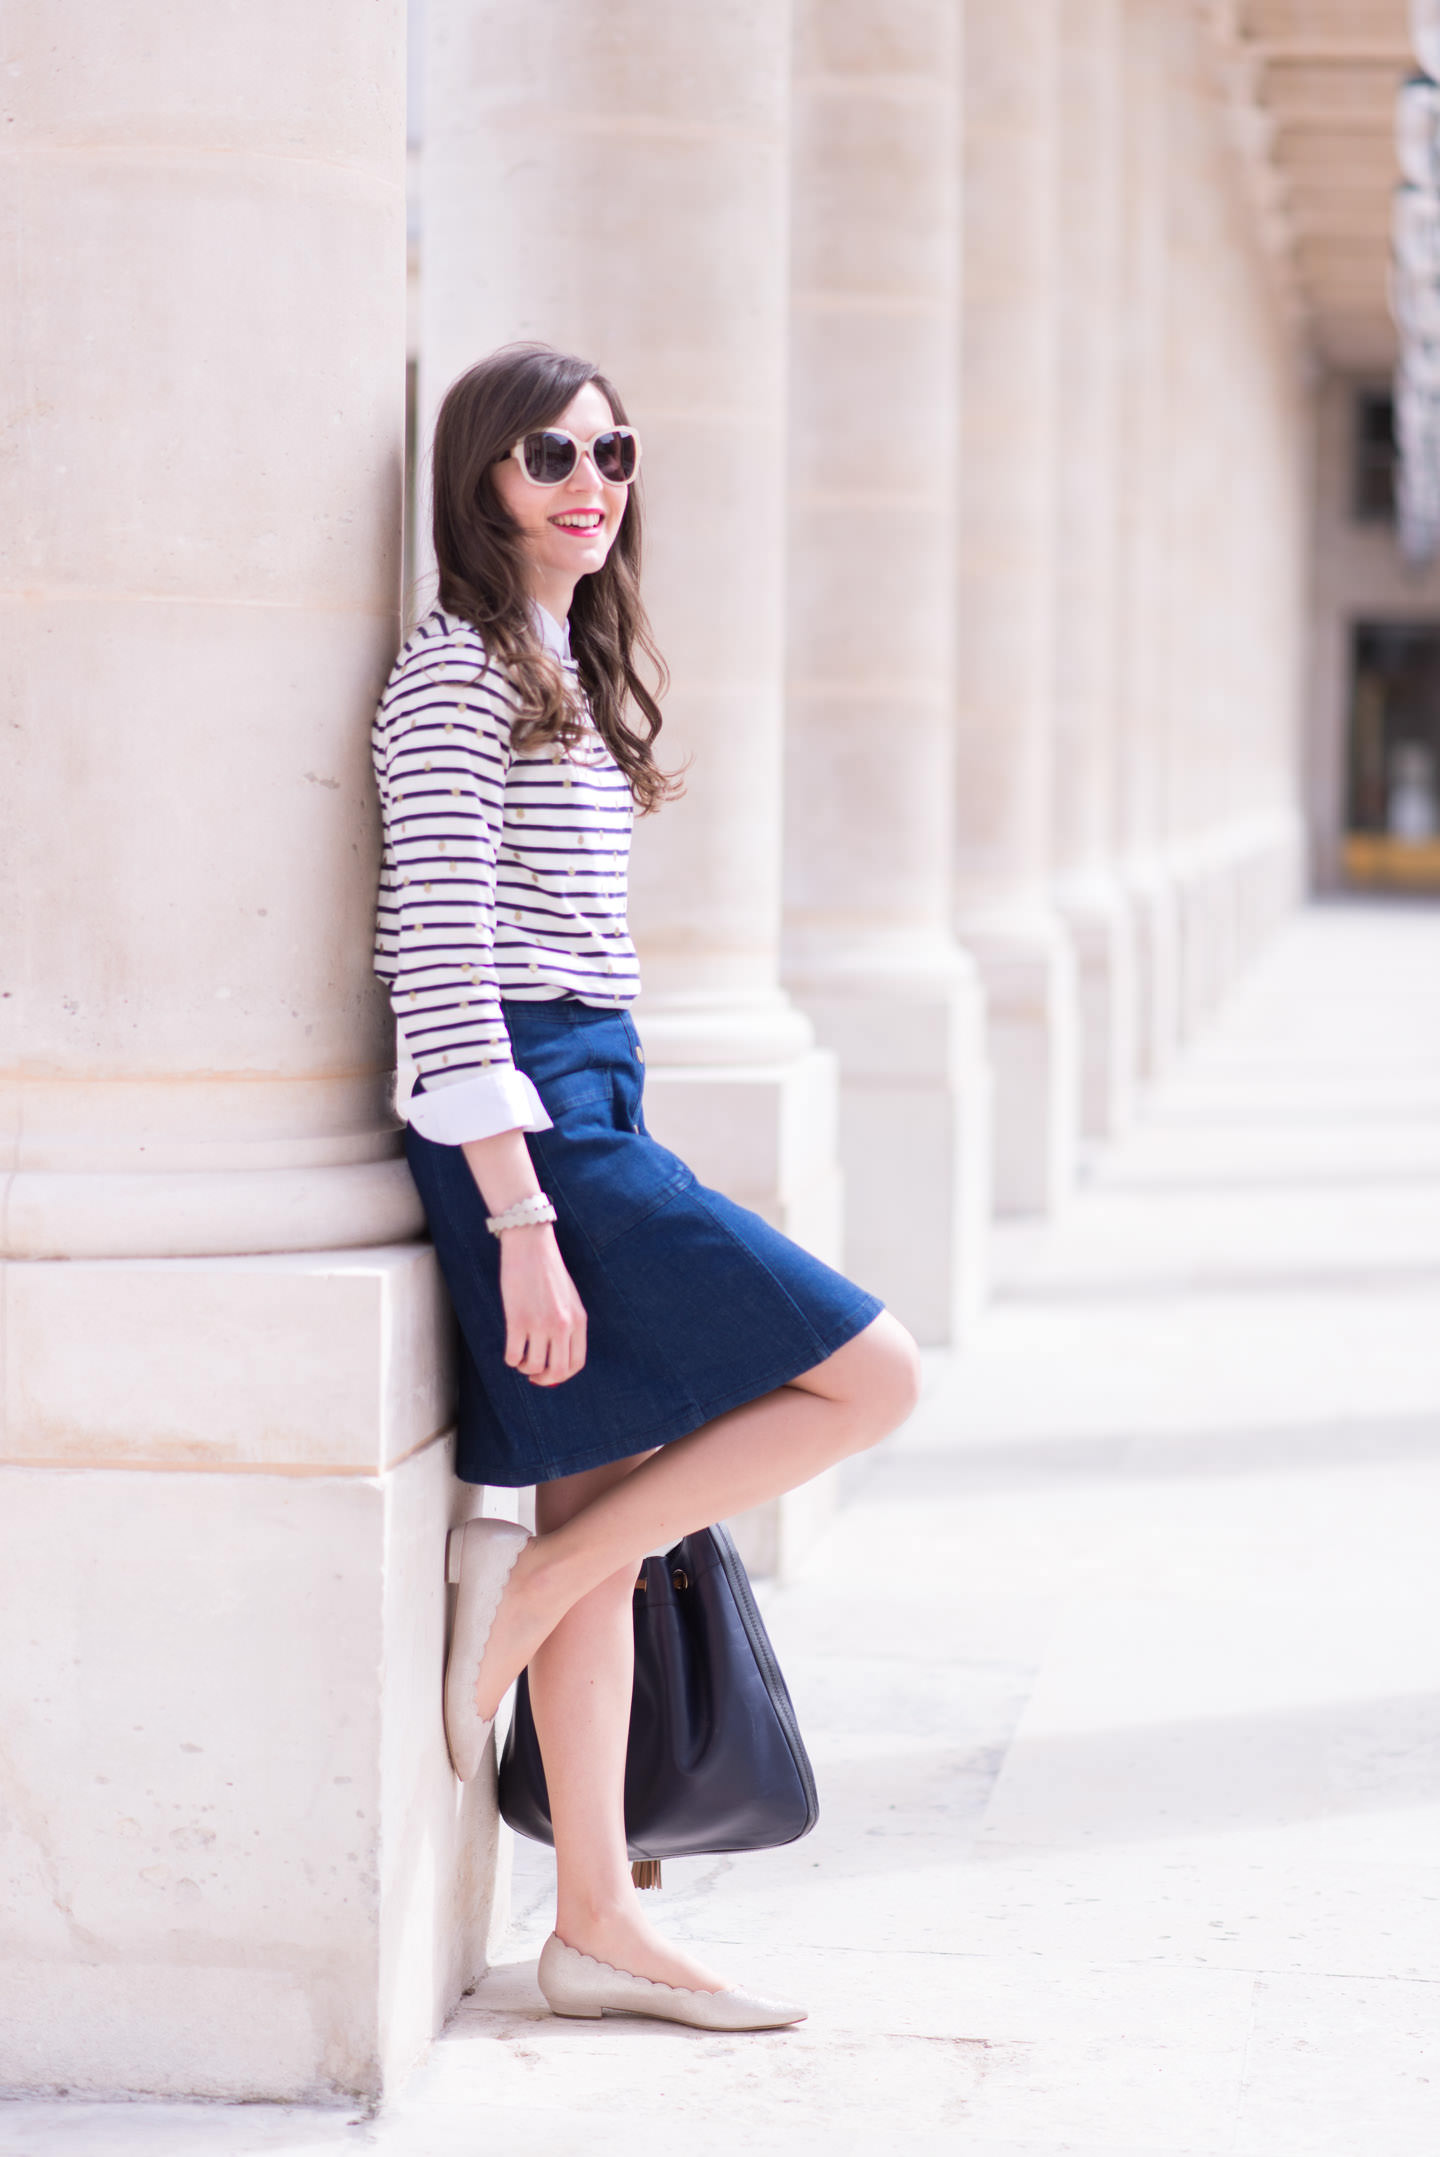 Blog-Mode-And-The-City-Looks-Le-Printemps-en-Boden